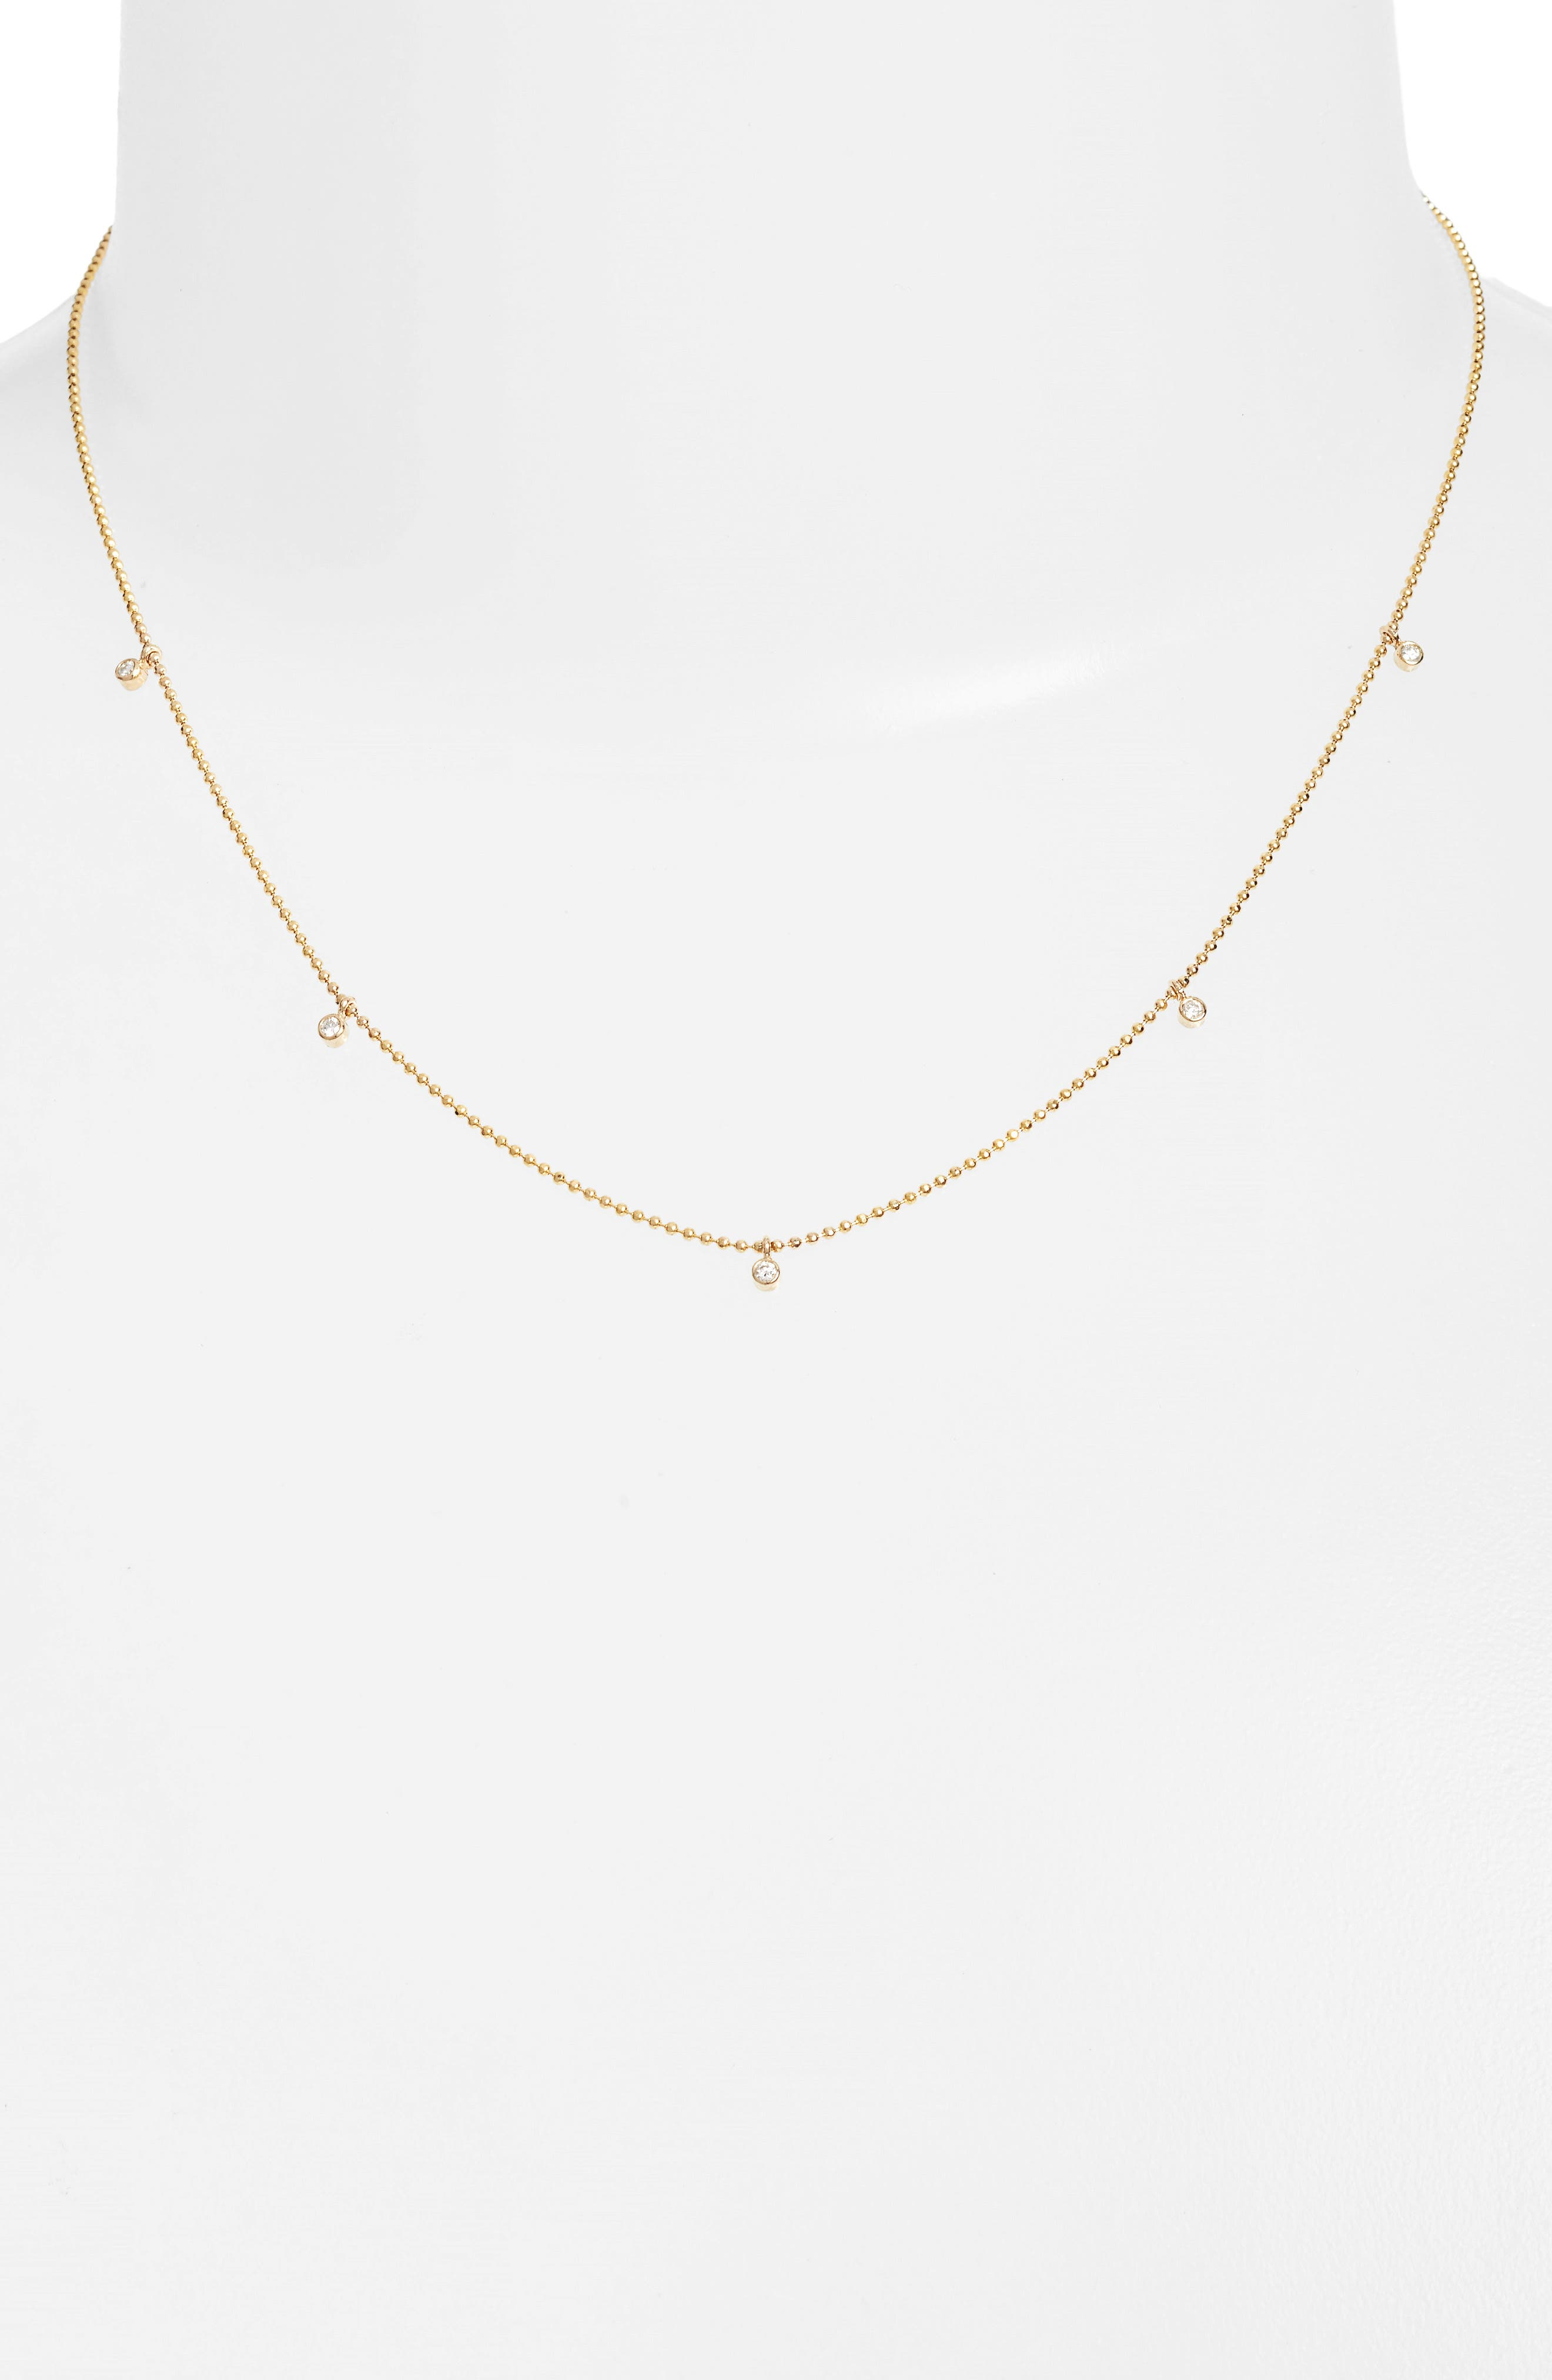 Diamond Charm Necklace,                             Alternate thumbnail 2, color,                             YELLOW GOLD